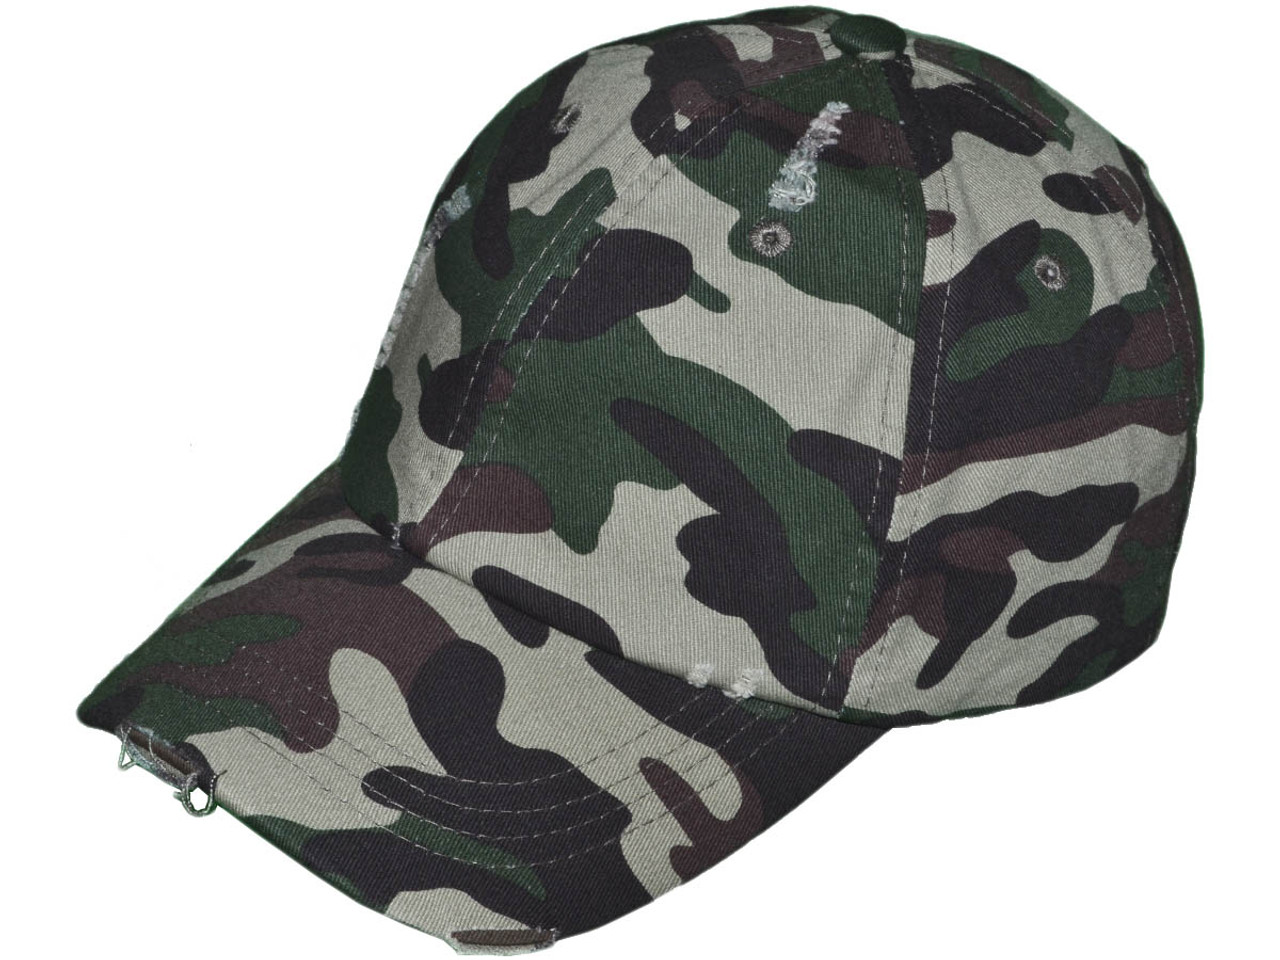 b6f64f761f2 Camo Vintage Dad Hats - Low Profile Unstructured Distressed Washed Cotton  Twill Polo BK Caps Velcro